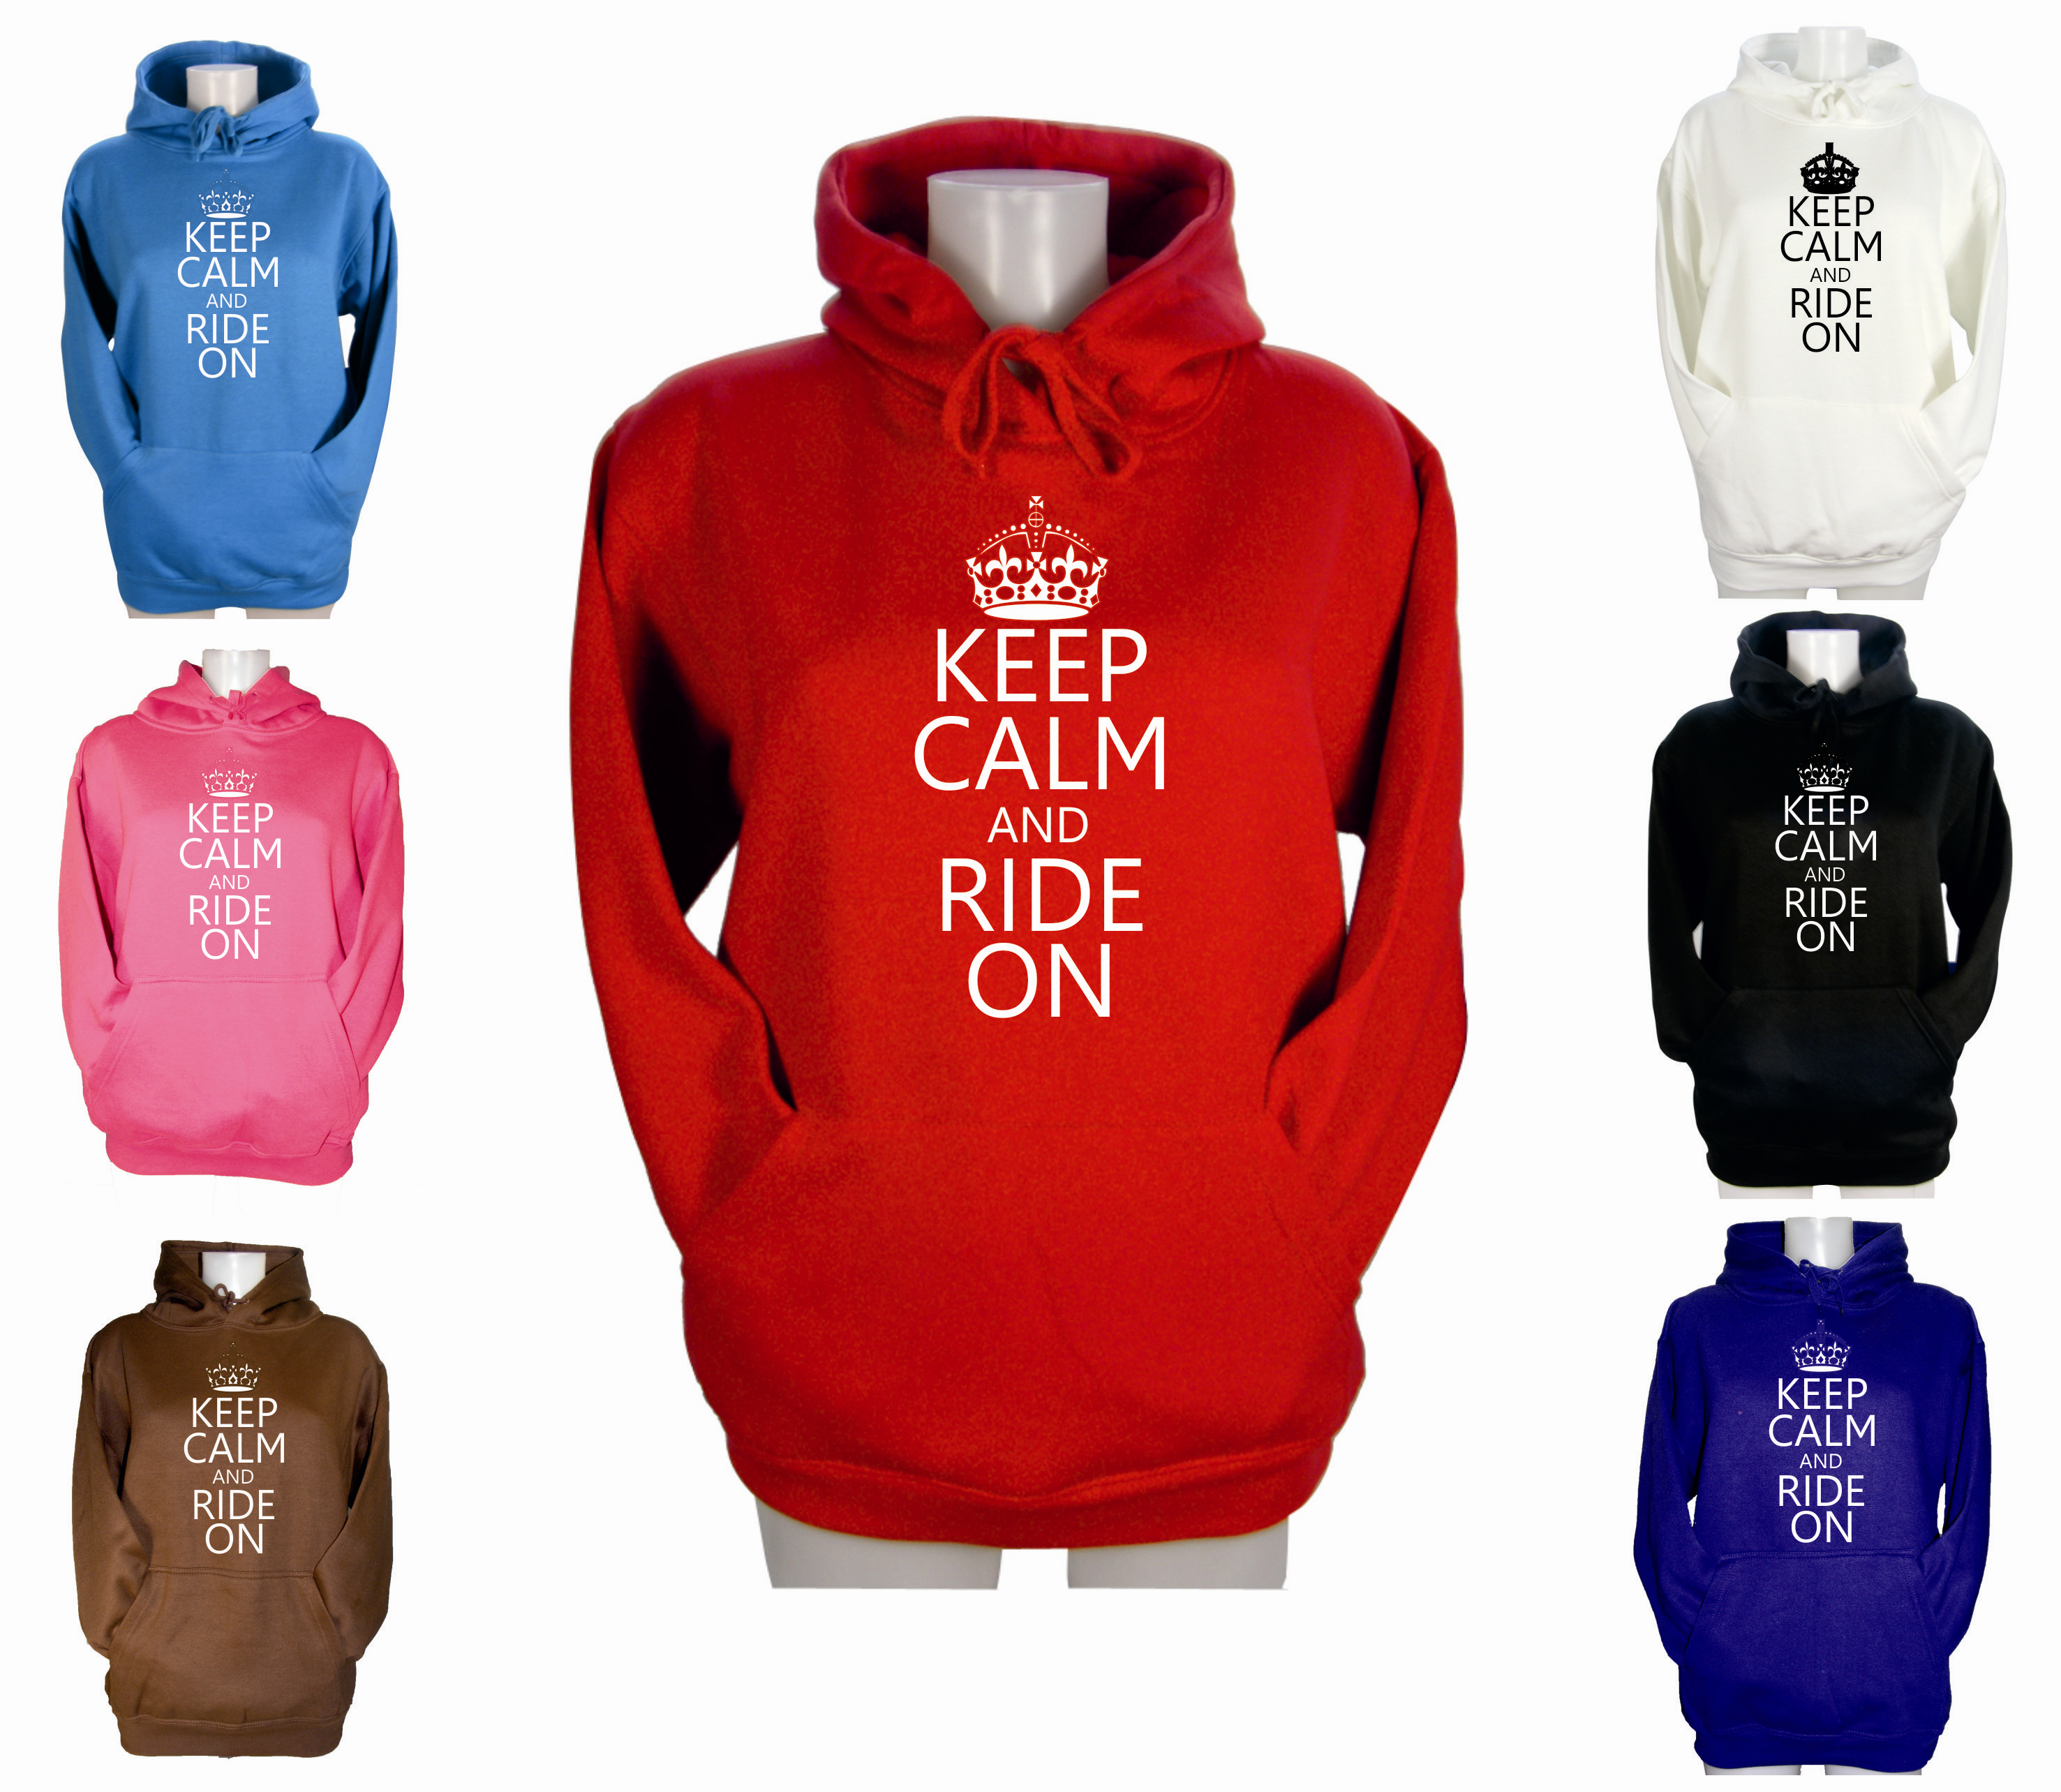 LADIES-KEEP-CALM-AND-RIDE-ON-HOODIE-GIRL-HORSE-RIDING-JODHPURS-HOODY-XS-S-M-L-XL